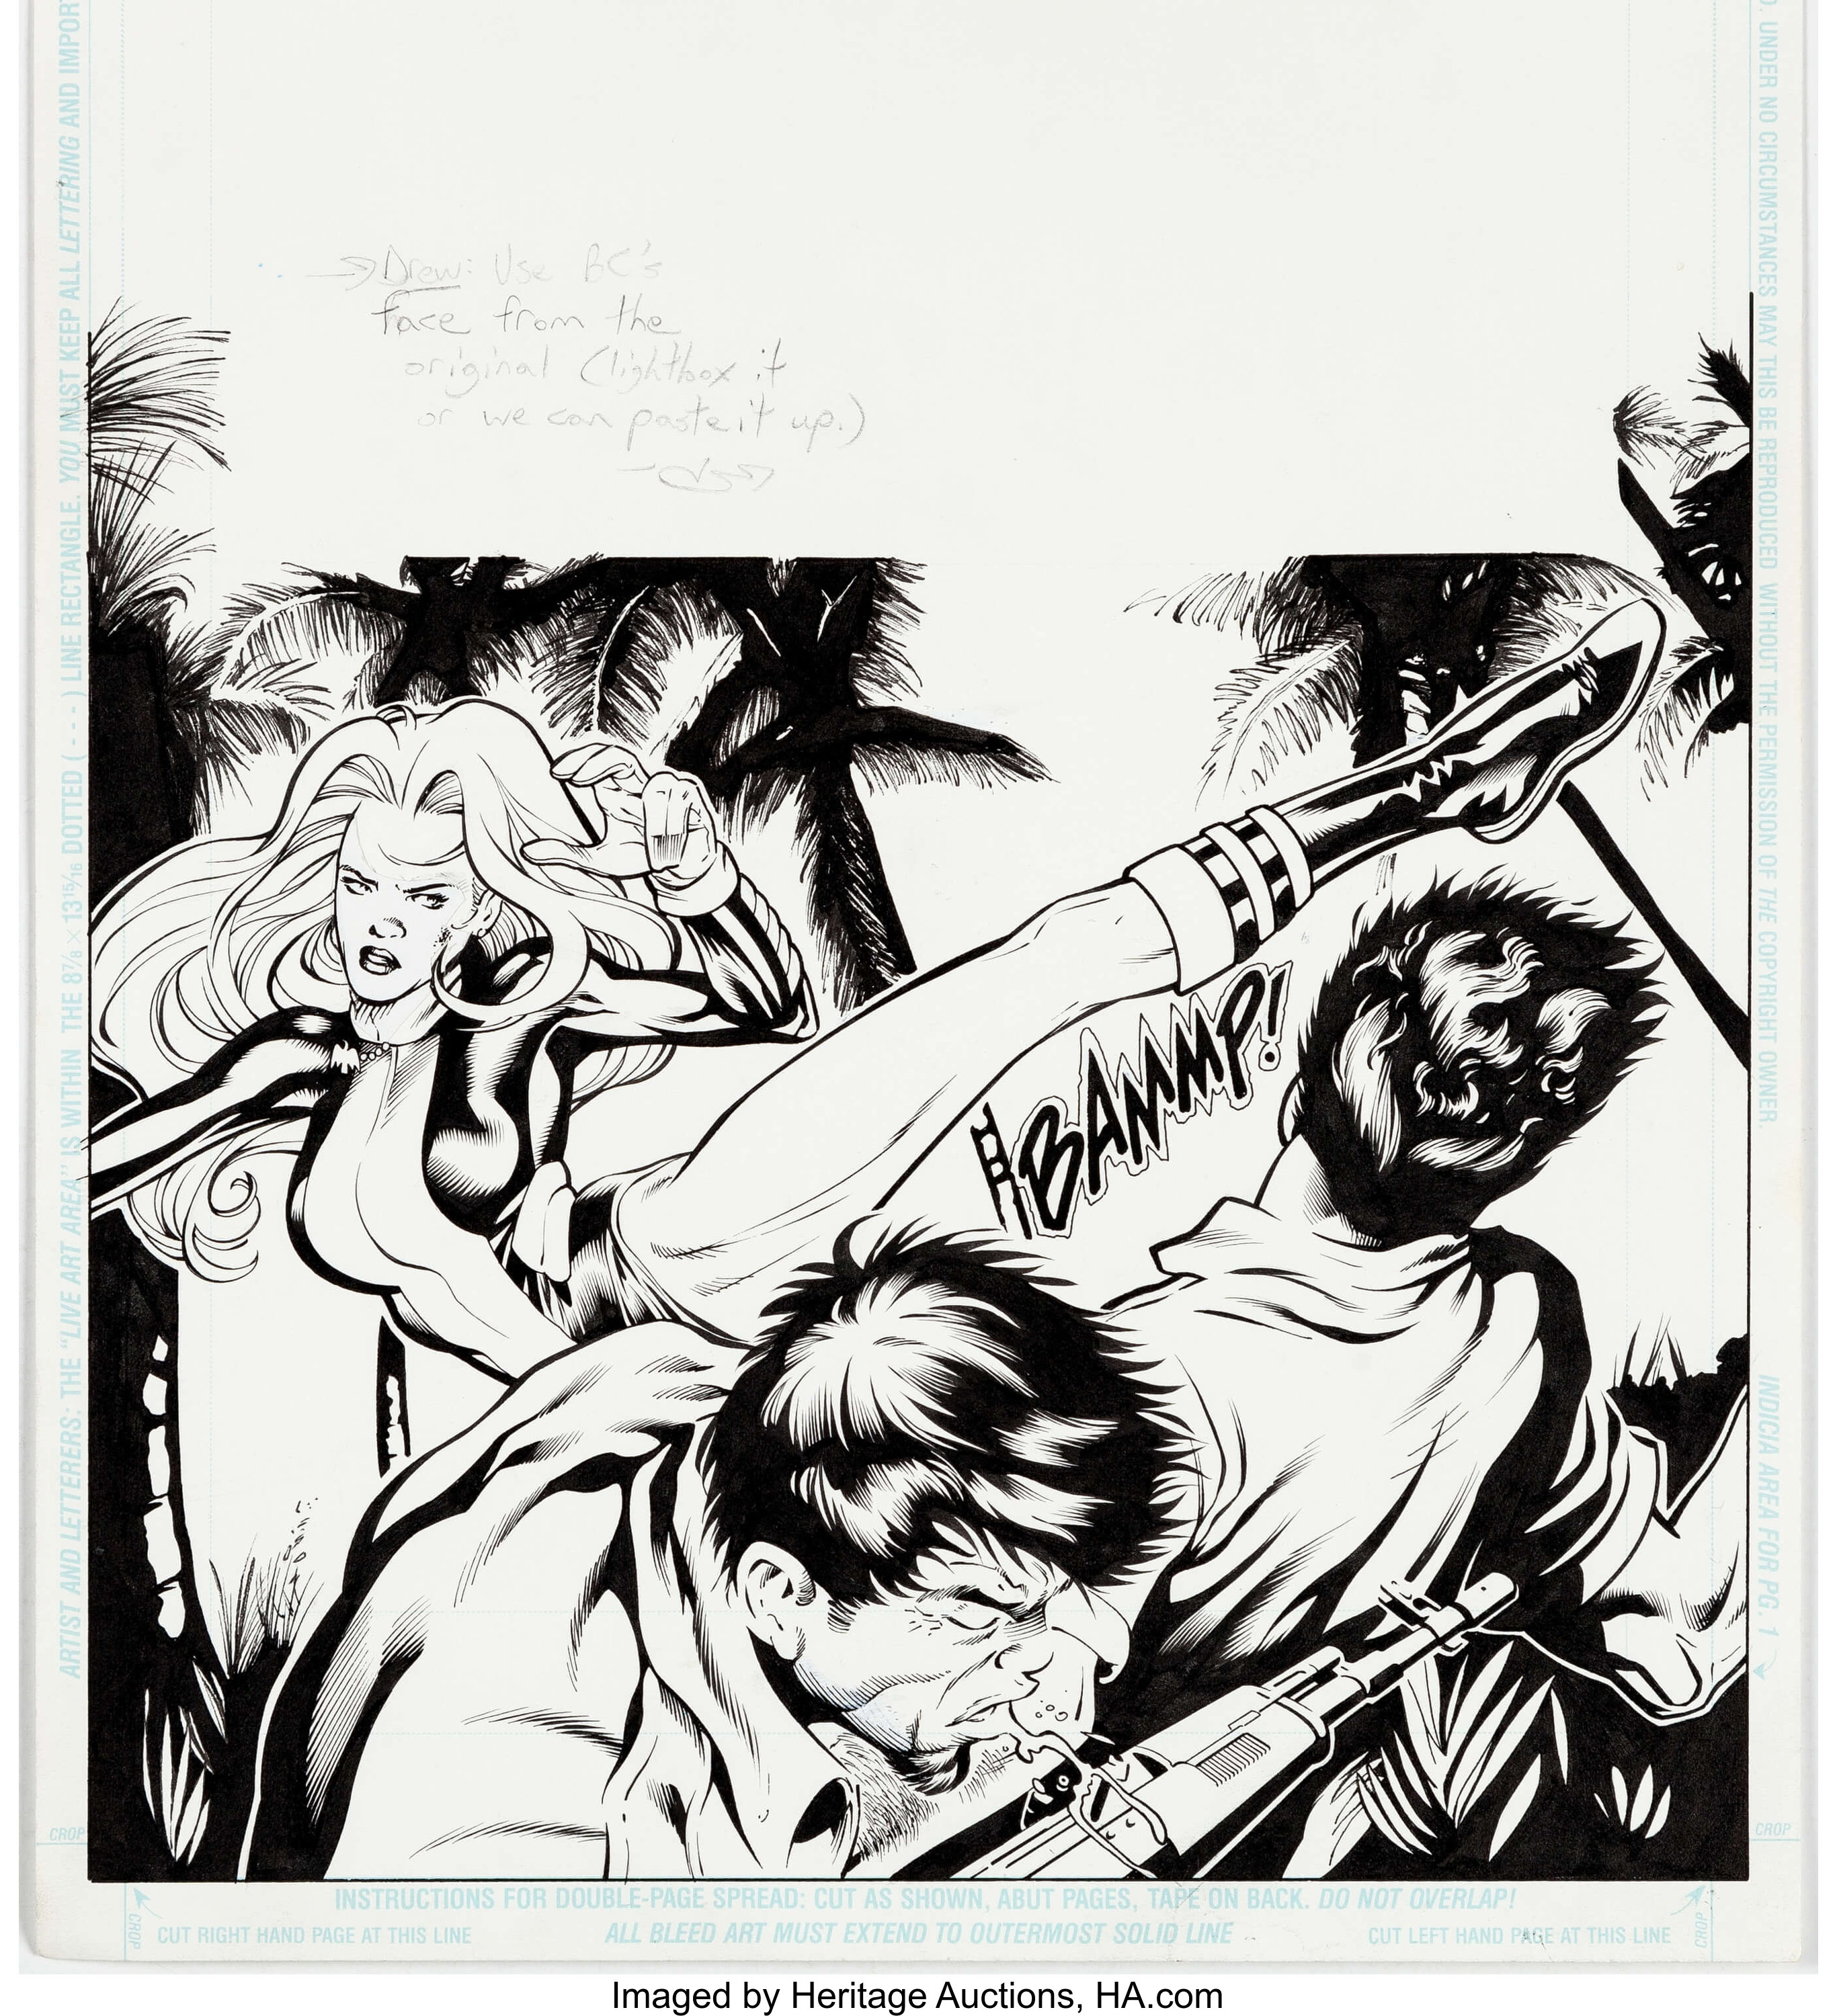 Greg Land And Drew Geraci Birds Of Prey 2 Page 10 Oracle And Black Lot 11092 Heritage Auctions